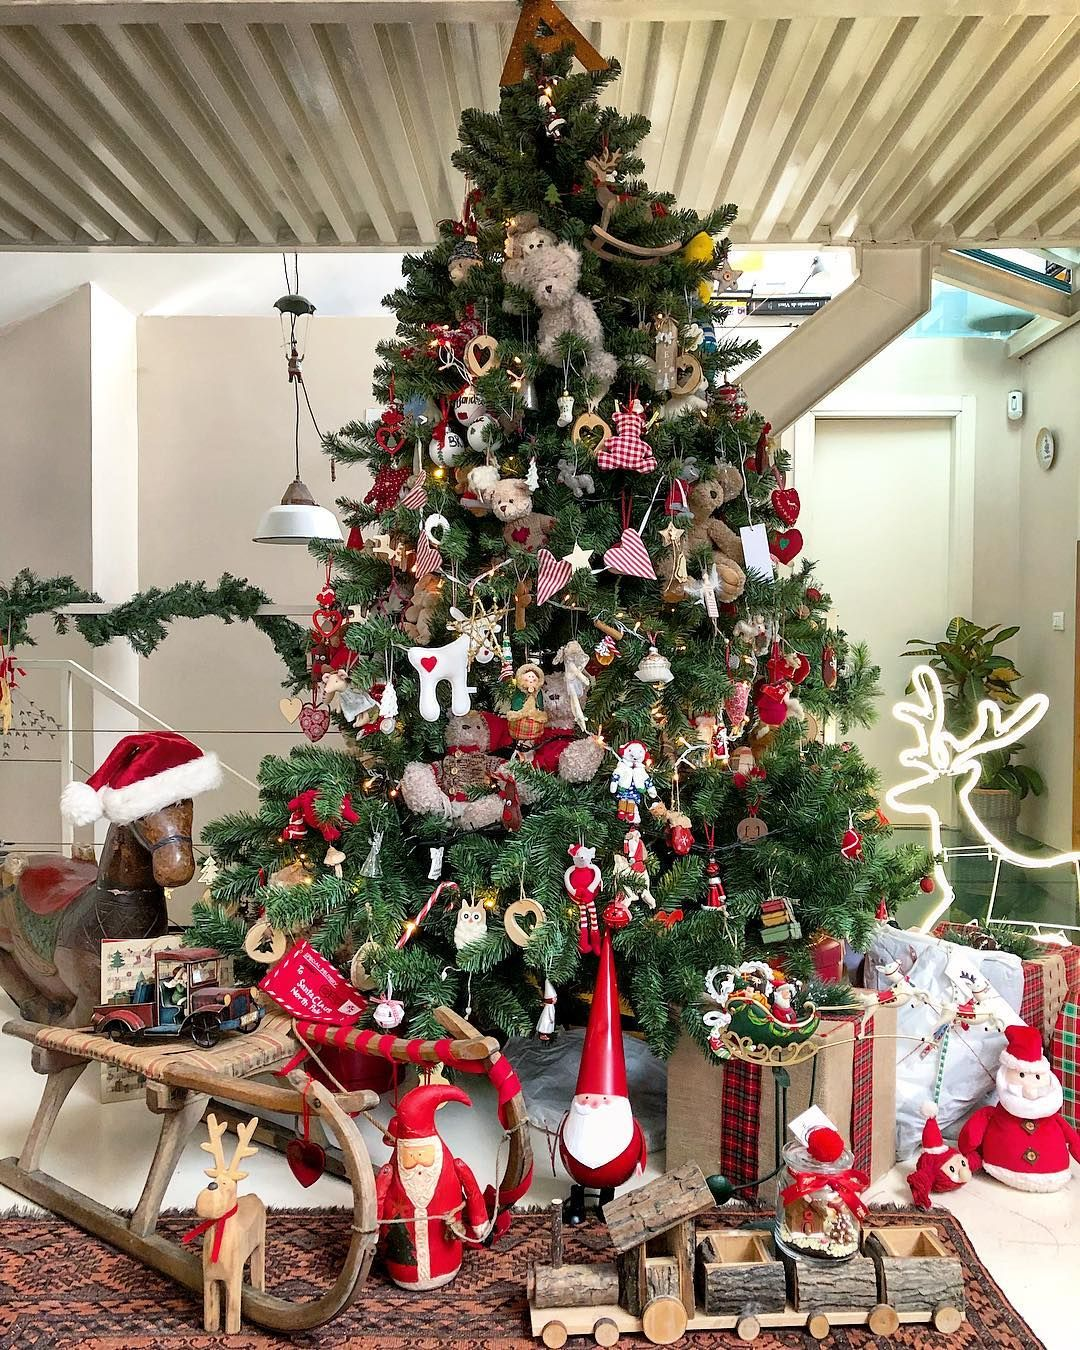 Albero Di Natale Kitchen.Mi Piace 8 265 Commenti 267 A Gipsy In The Kitchen Agipsyinthekitchen Su Instagram Falalalalal Country Christmas Trees Christmas Mood Holiday Decor